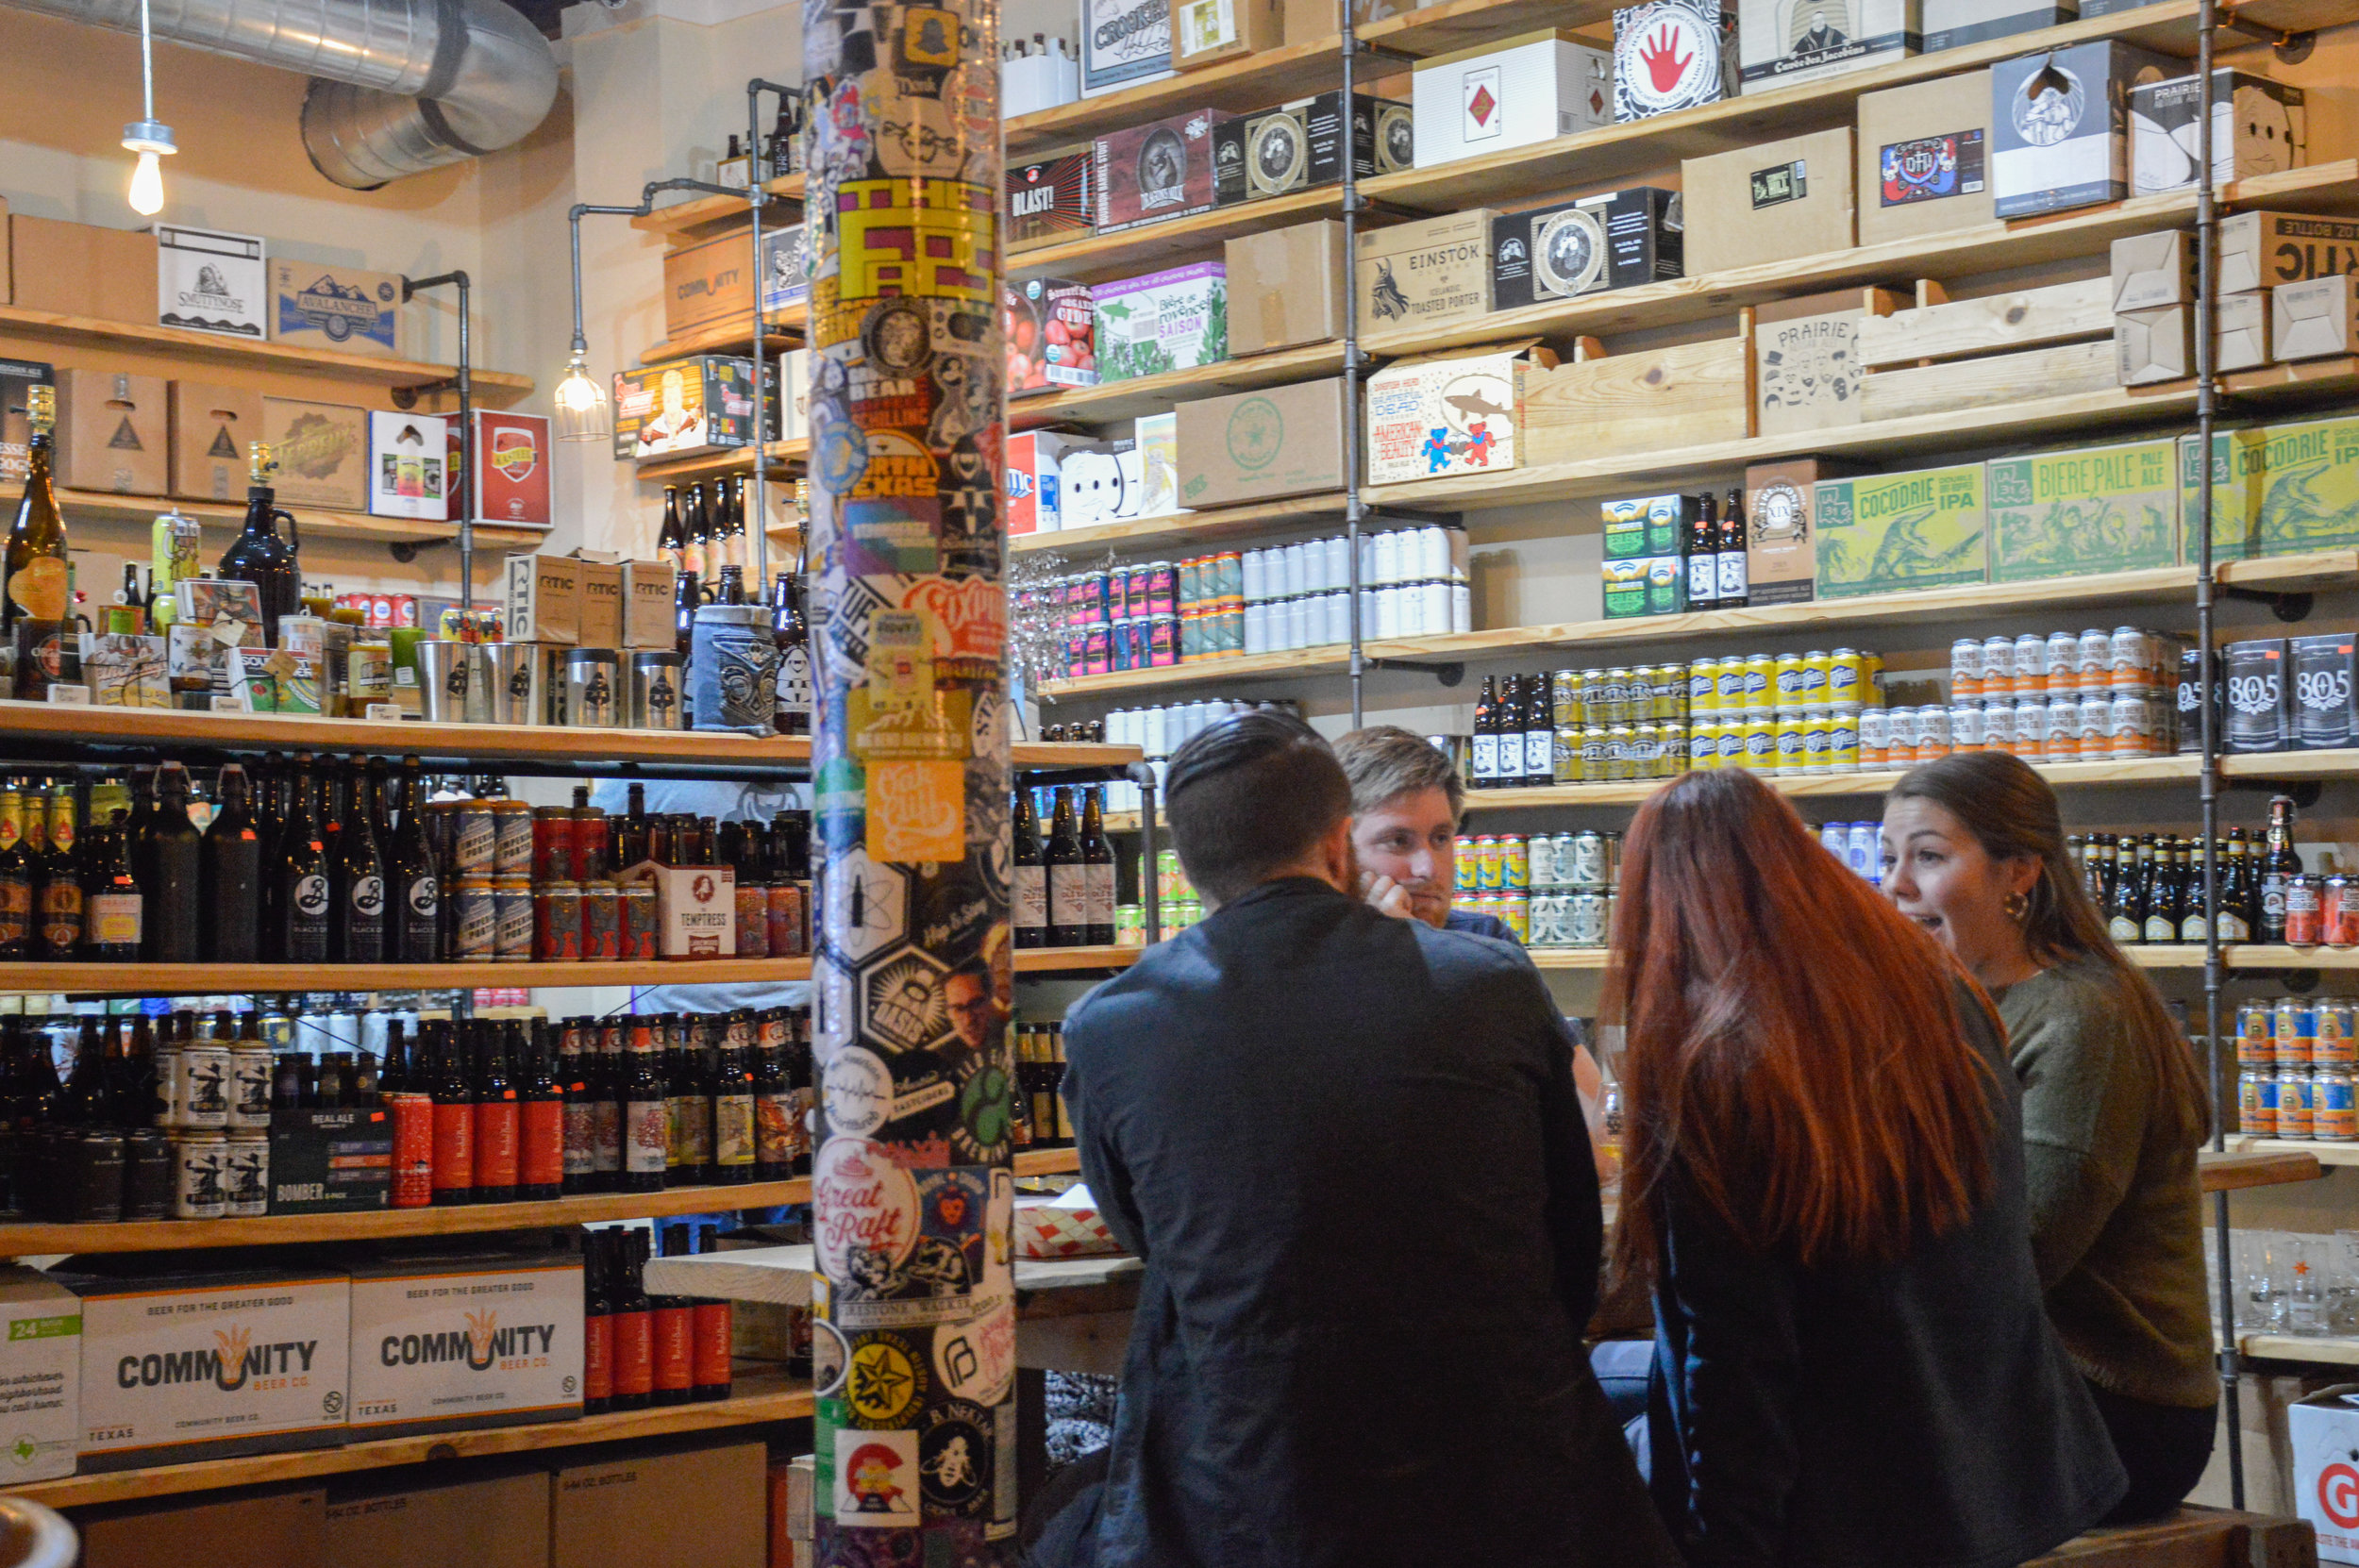 A look at the many offerings of craft beer at The Bearded Monk